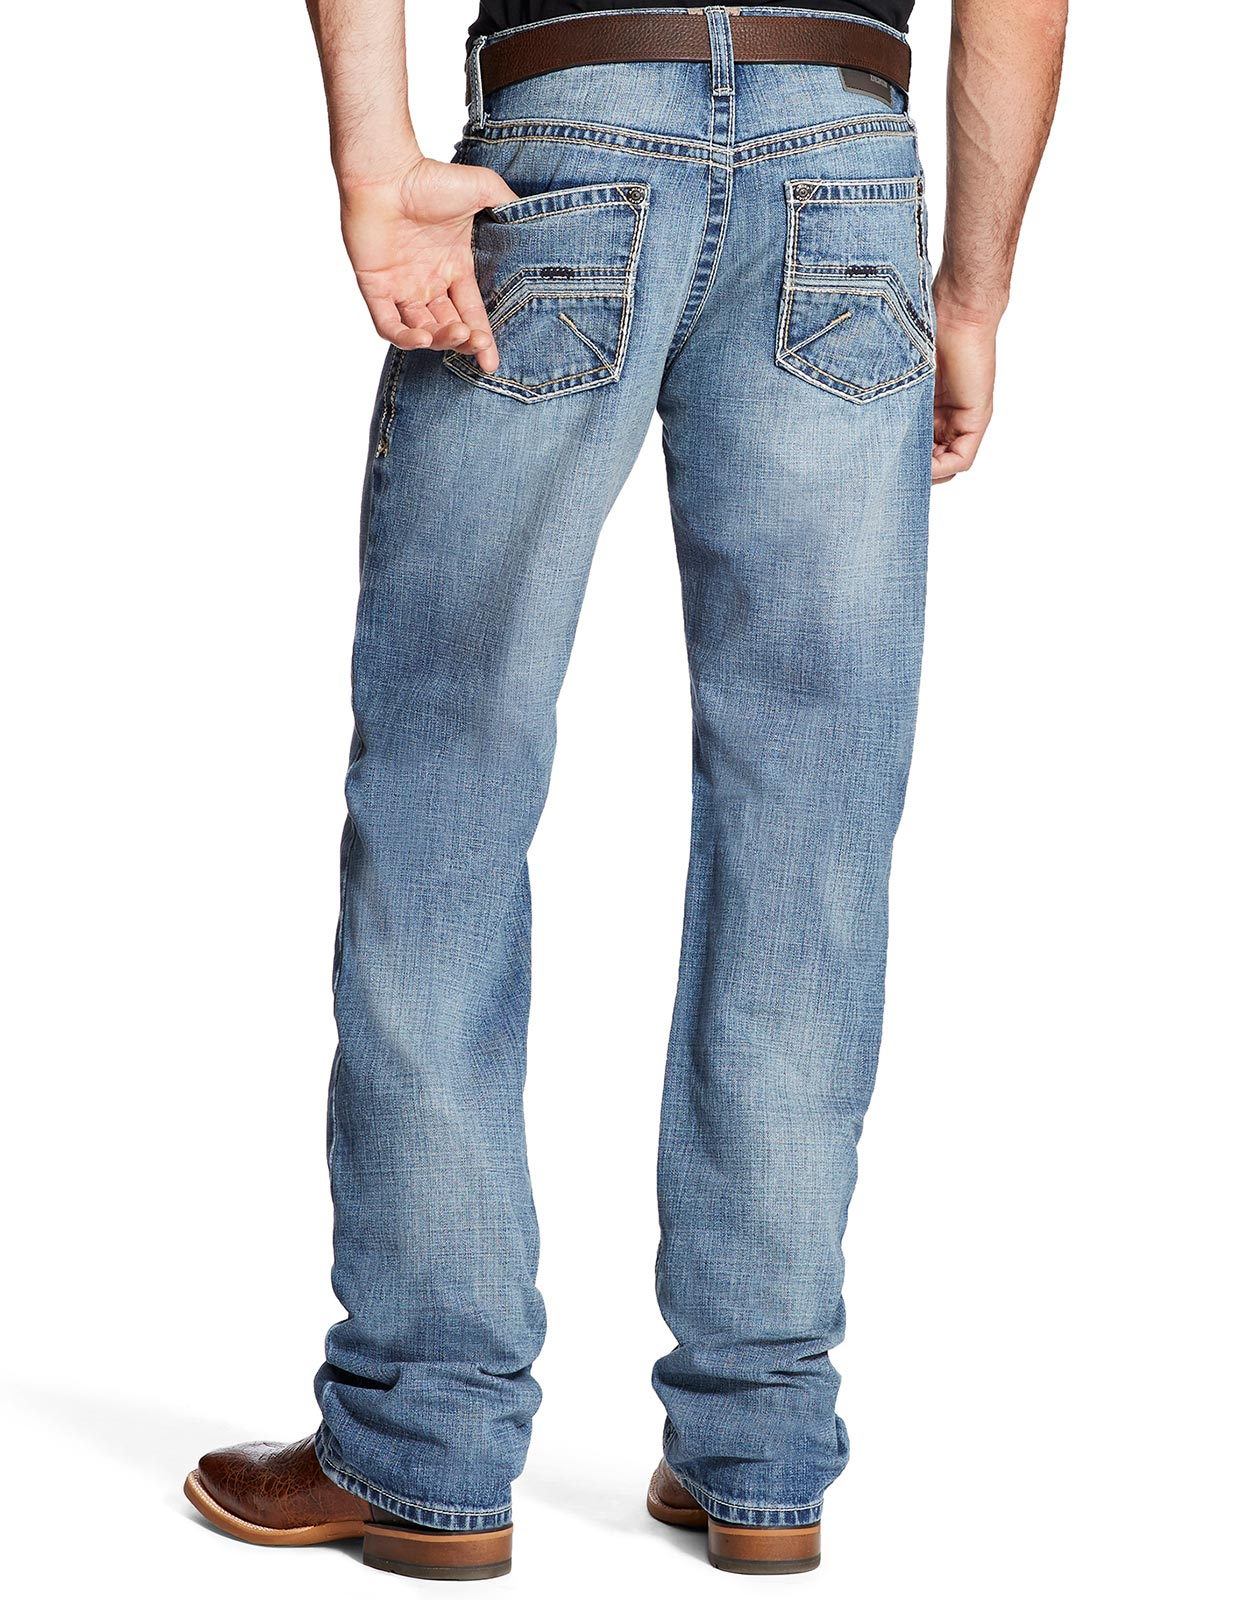 Ariat Men's M4 Low Rise Relaxed Fit Boot Cut Jeans - Wyatt